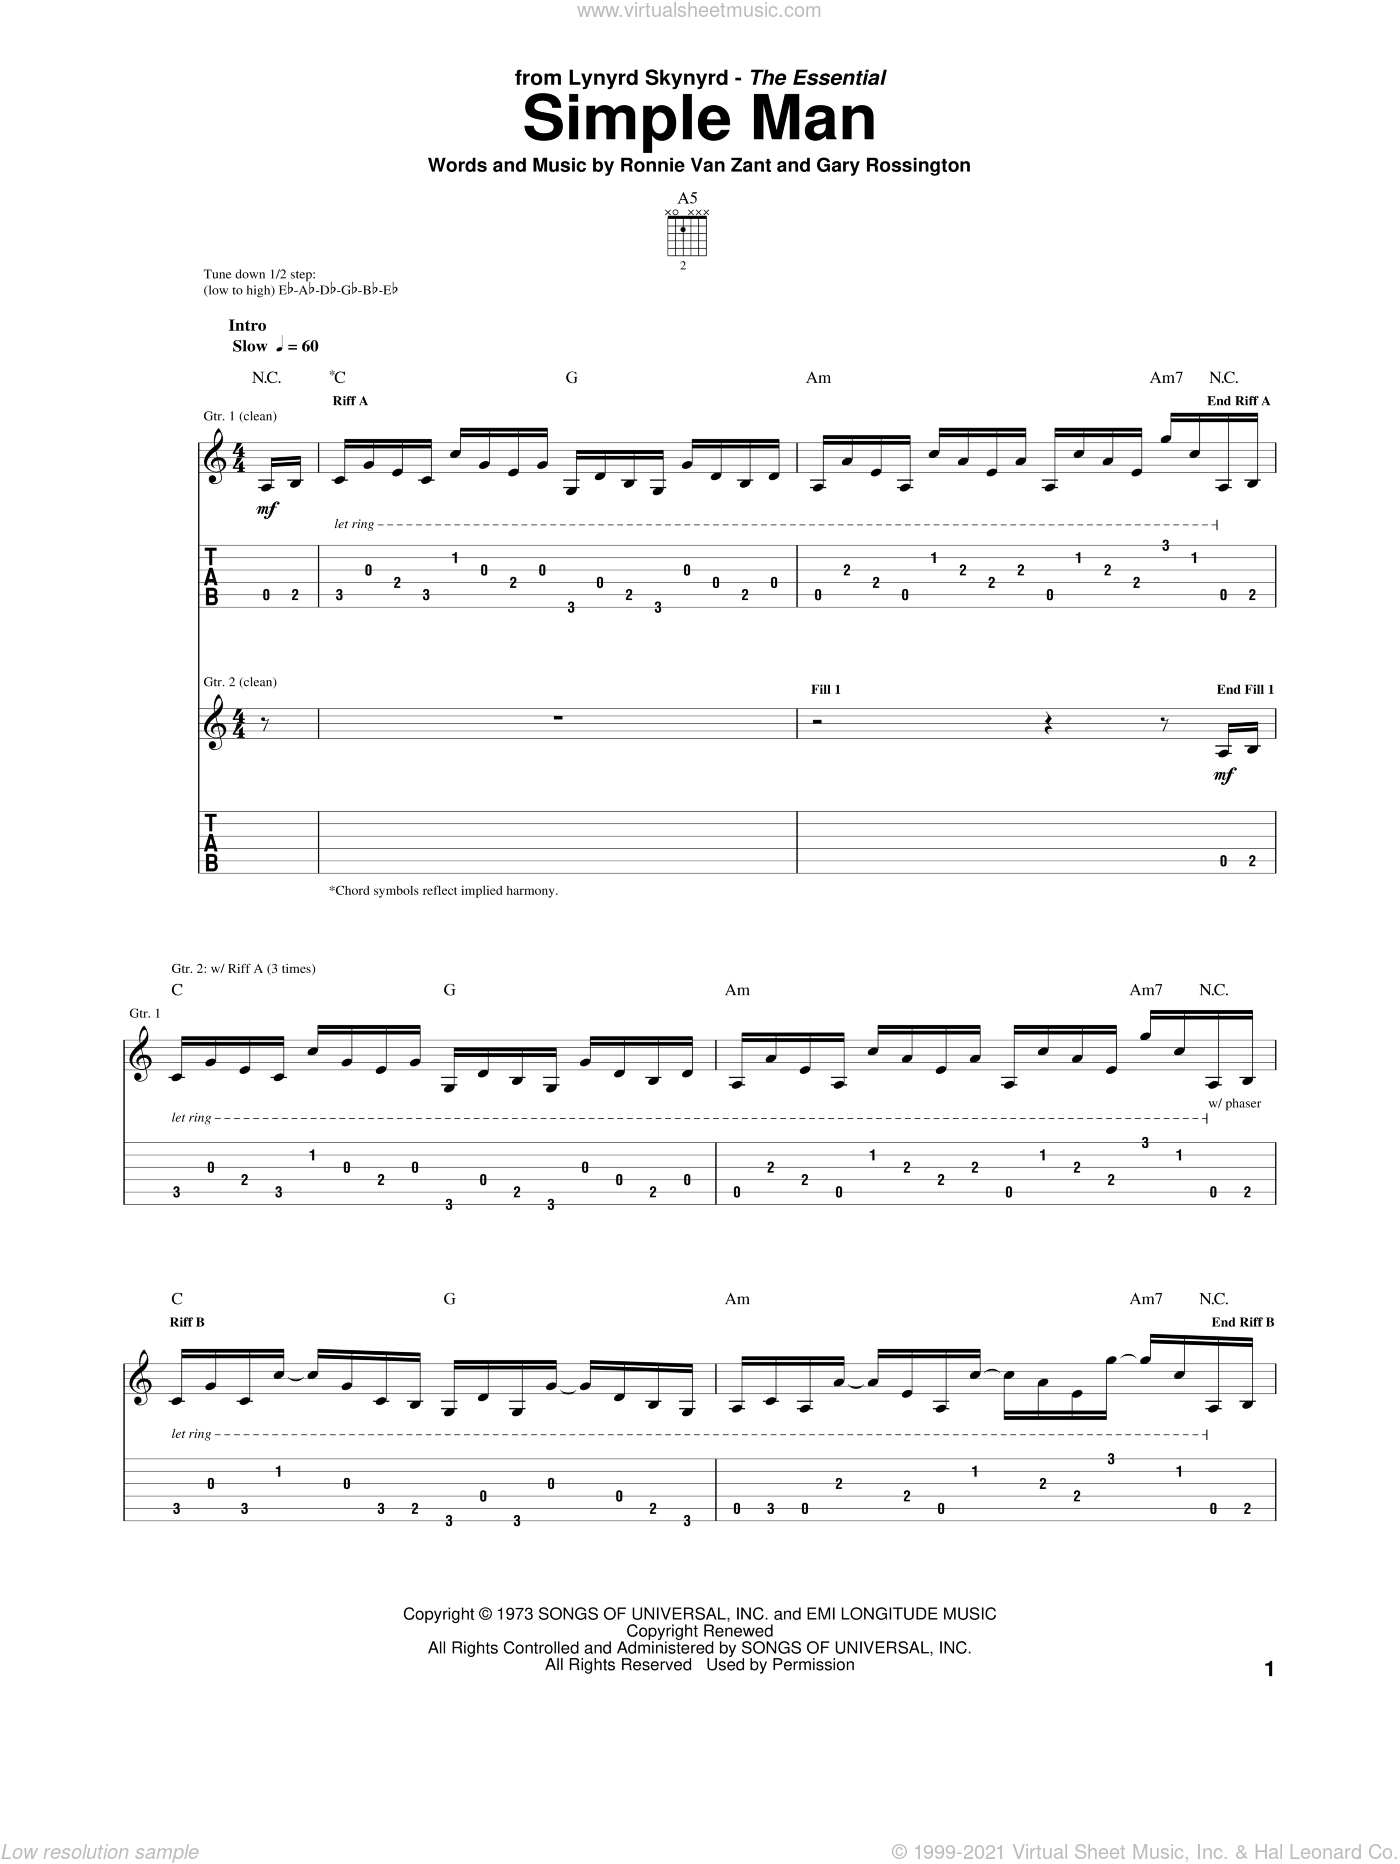 Simple Man sheet music for guitar (tablature) by Lynyrd Skynyrd, Gary Rossington and Ronnie Van Zant, intermediate skill level